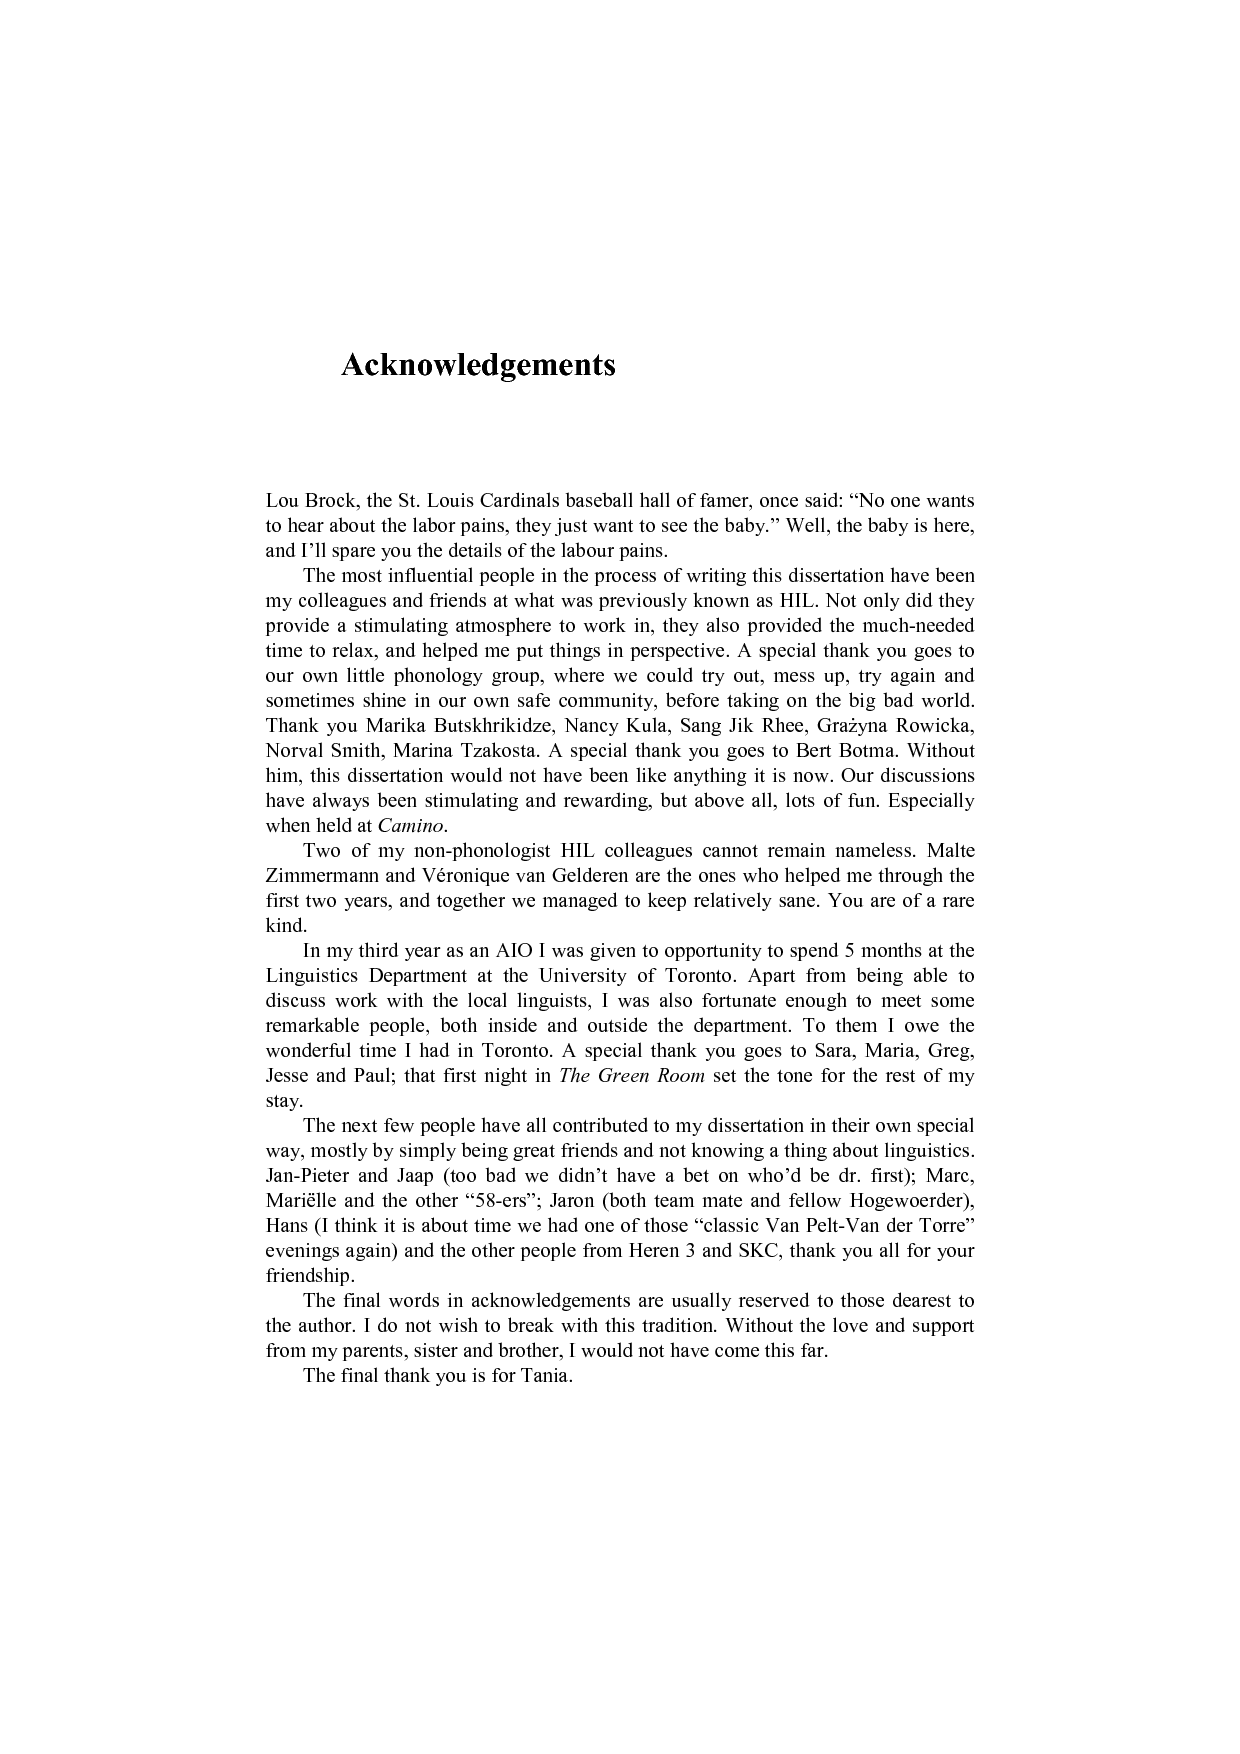 acknowledgement for dissertation writing